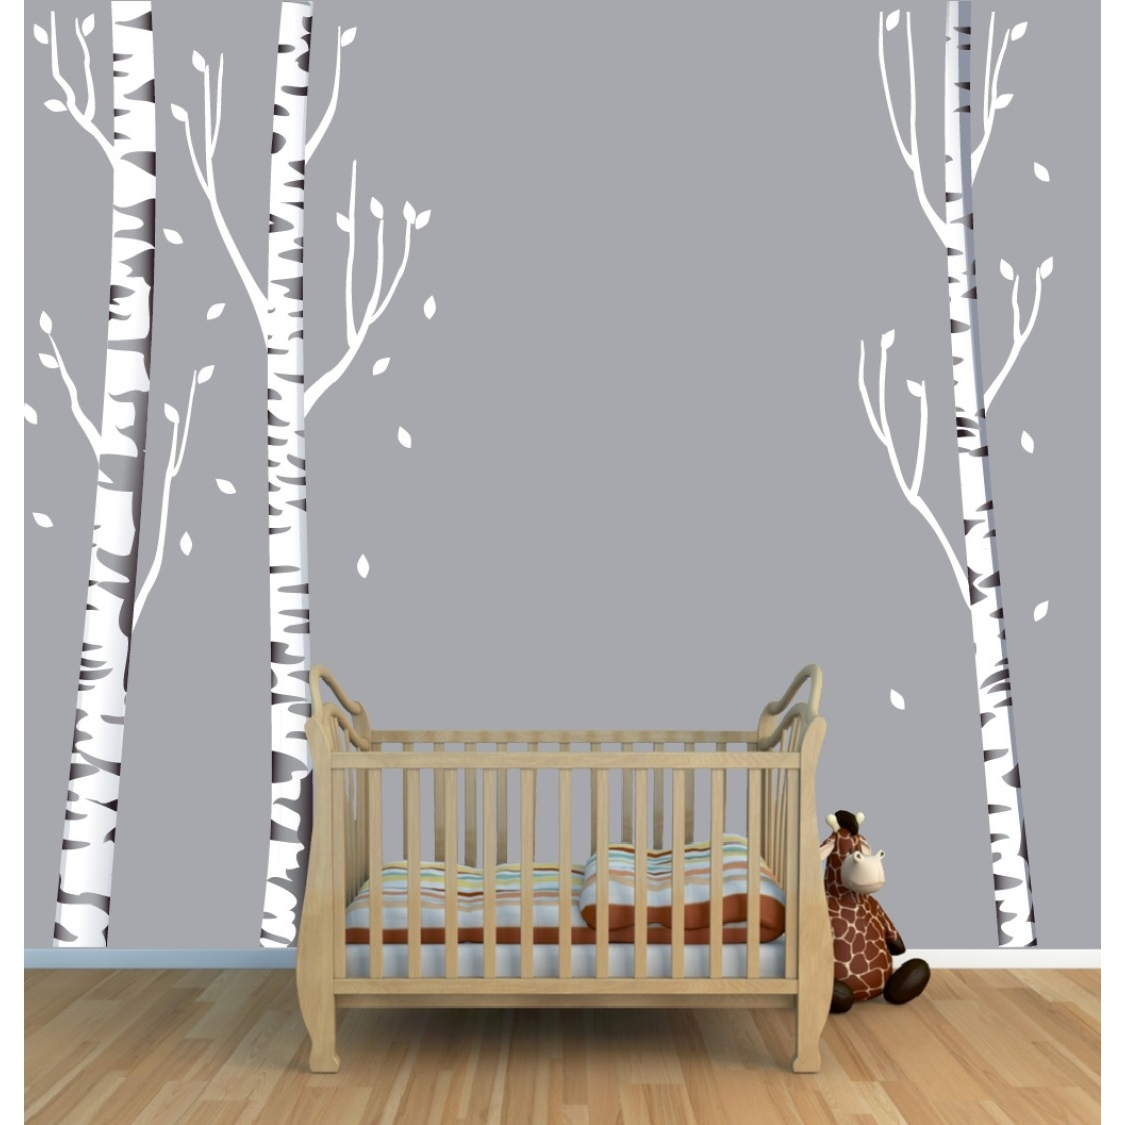 Birch Tree Wall Art Intended For Recent Tree Wall Art With Birch Tree Wall Decals For Kids Rooms (View 4 of 20)